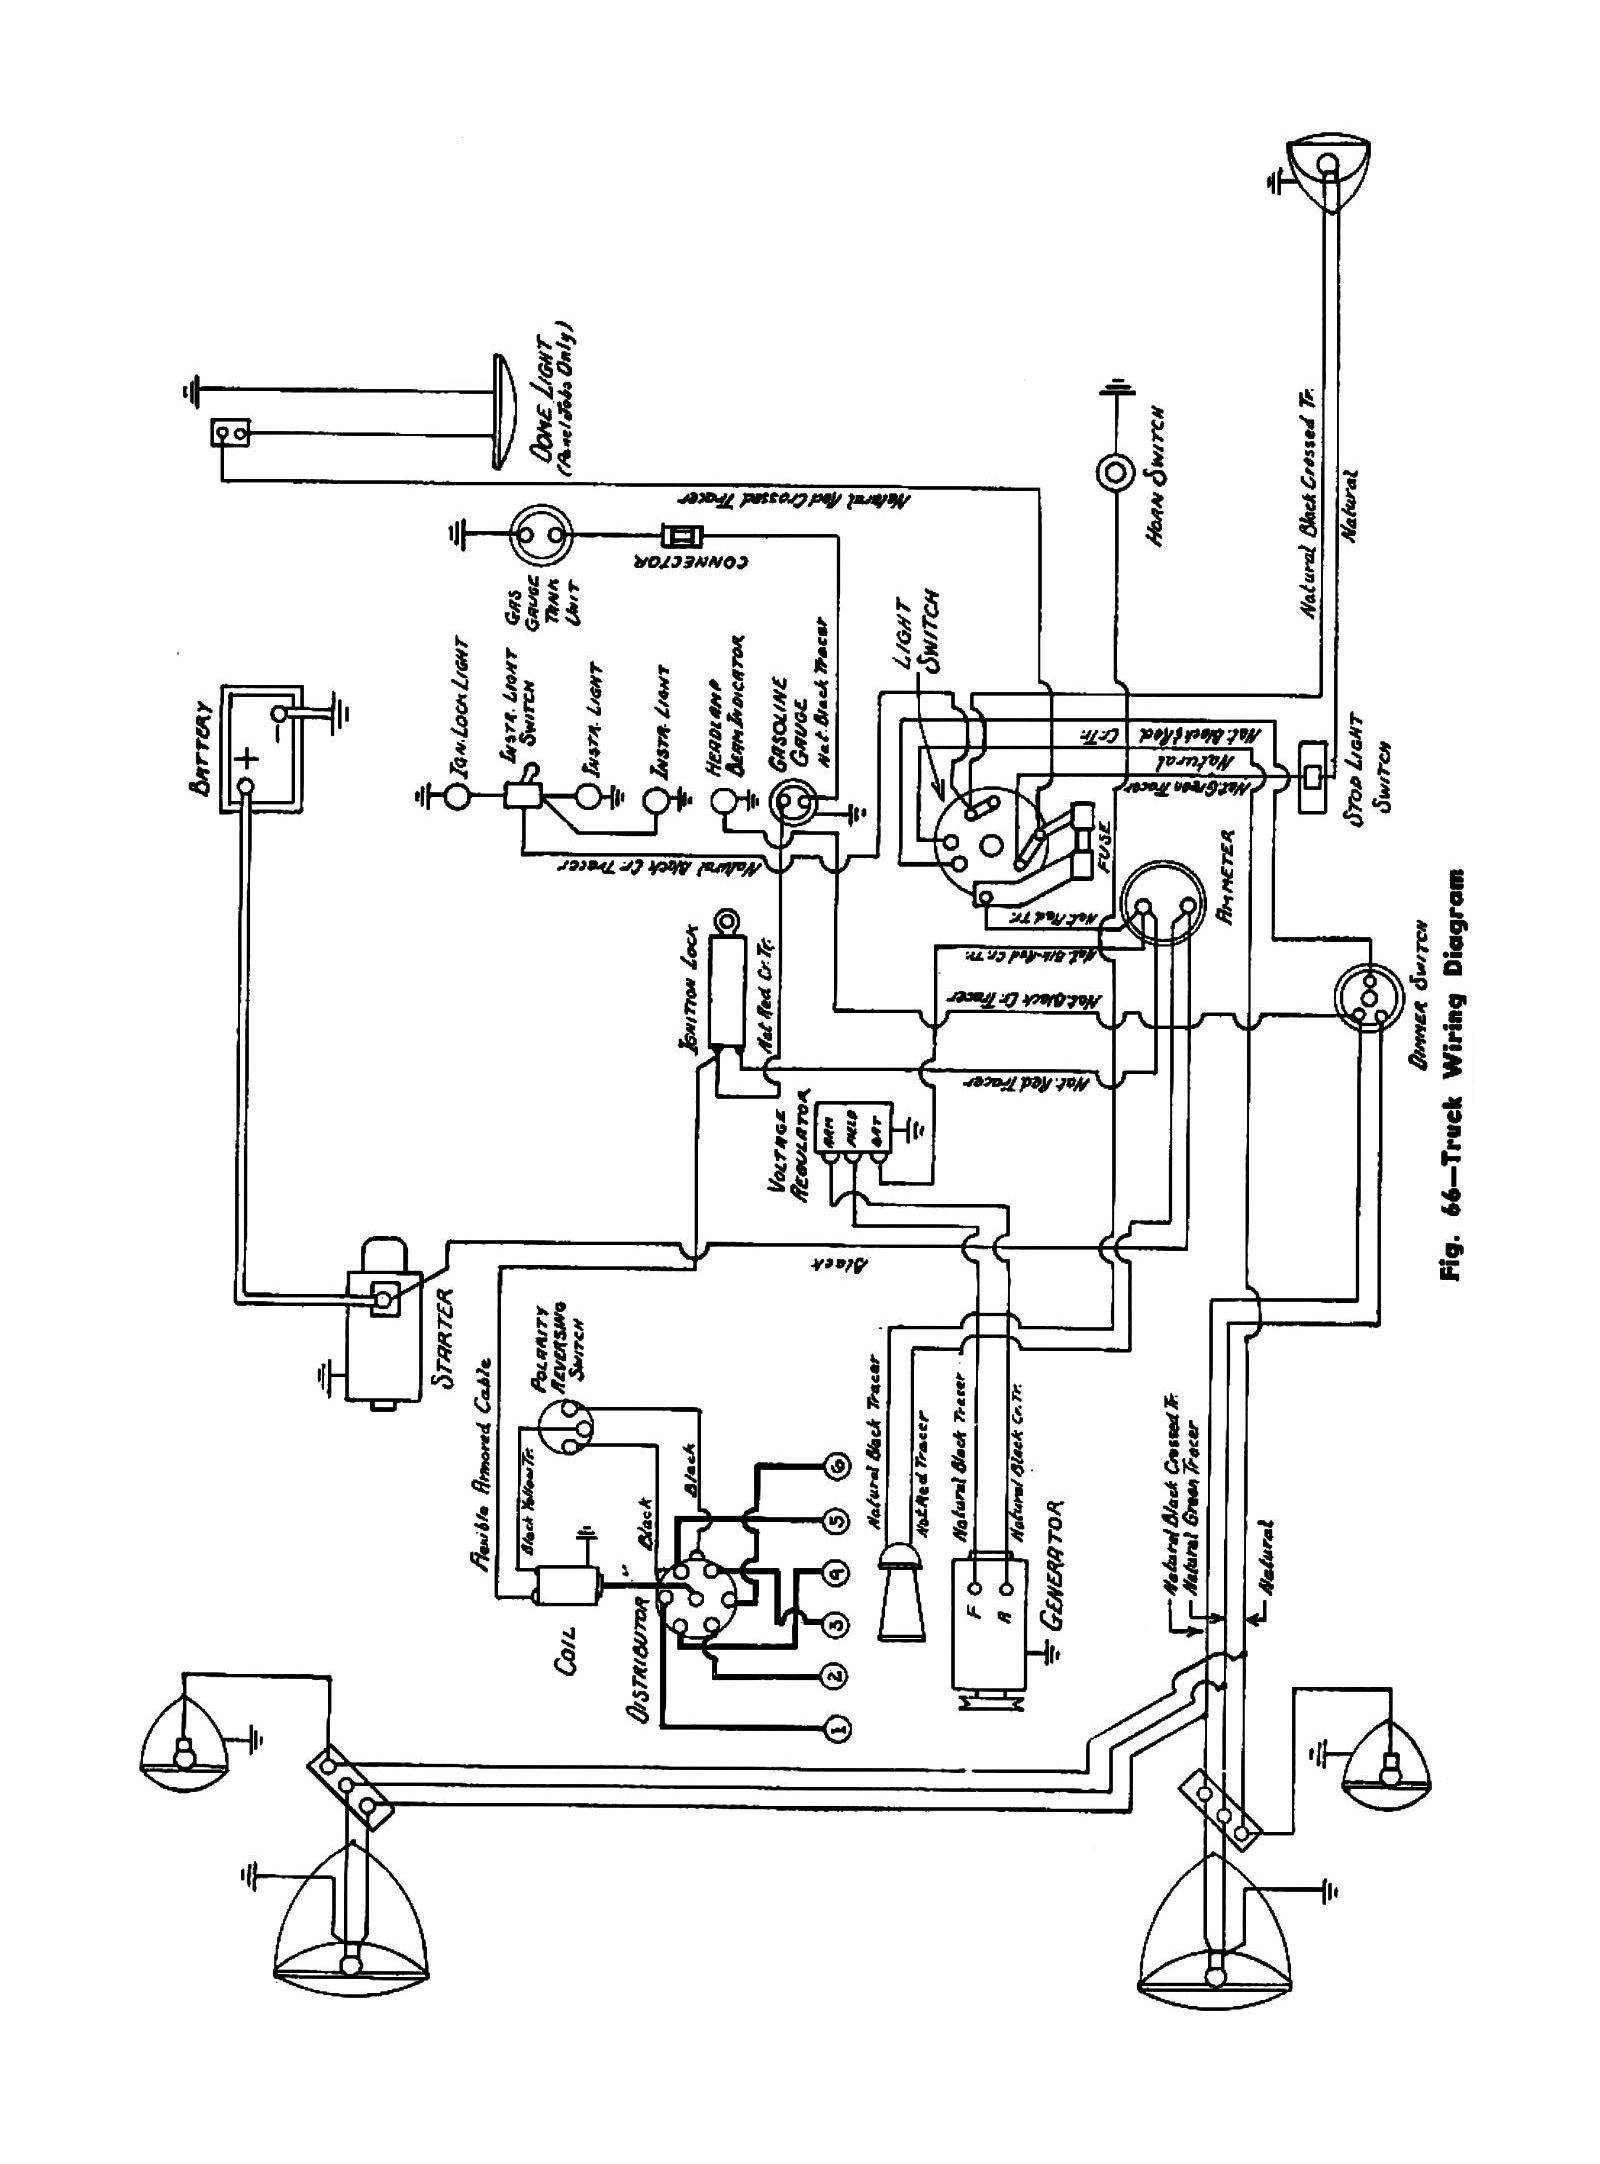 45truck ihc truck wiring diagrams mazda truck wiring diagrams \u2022 free Chevy Truck Fuse Box Diagram at readyjetset.co